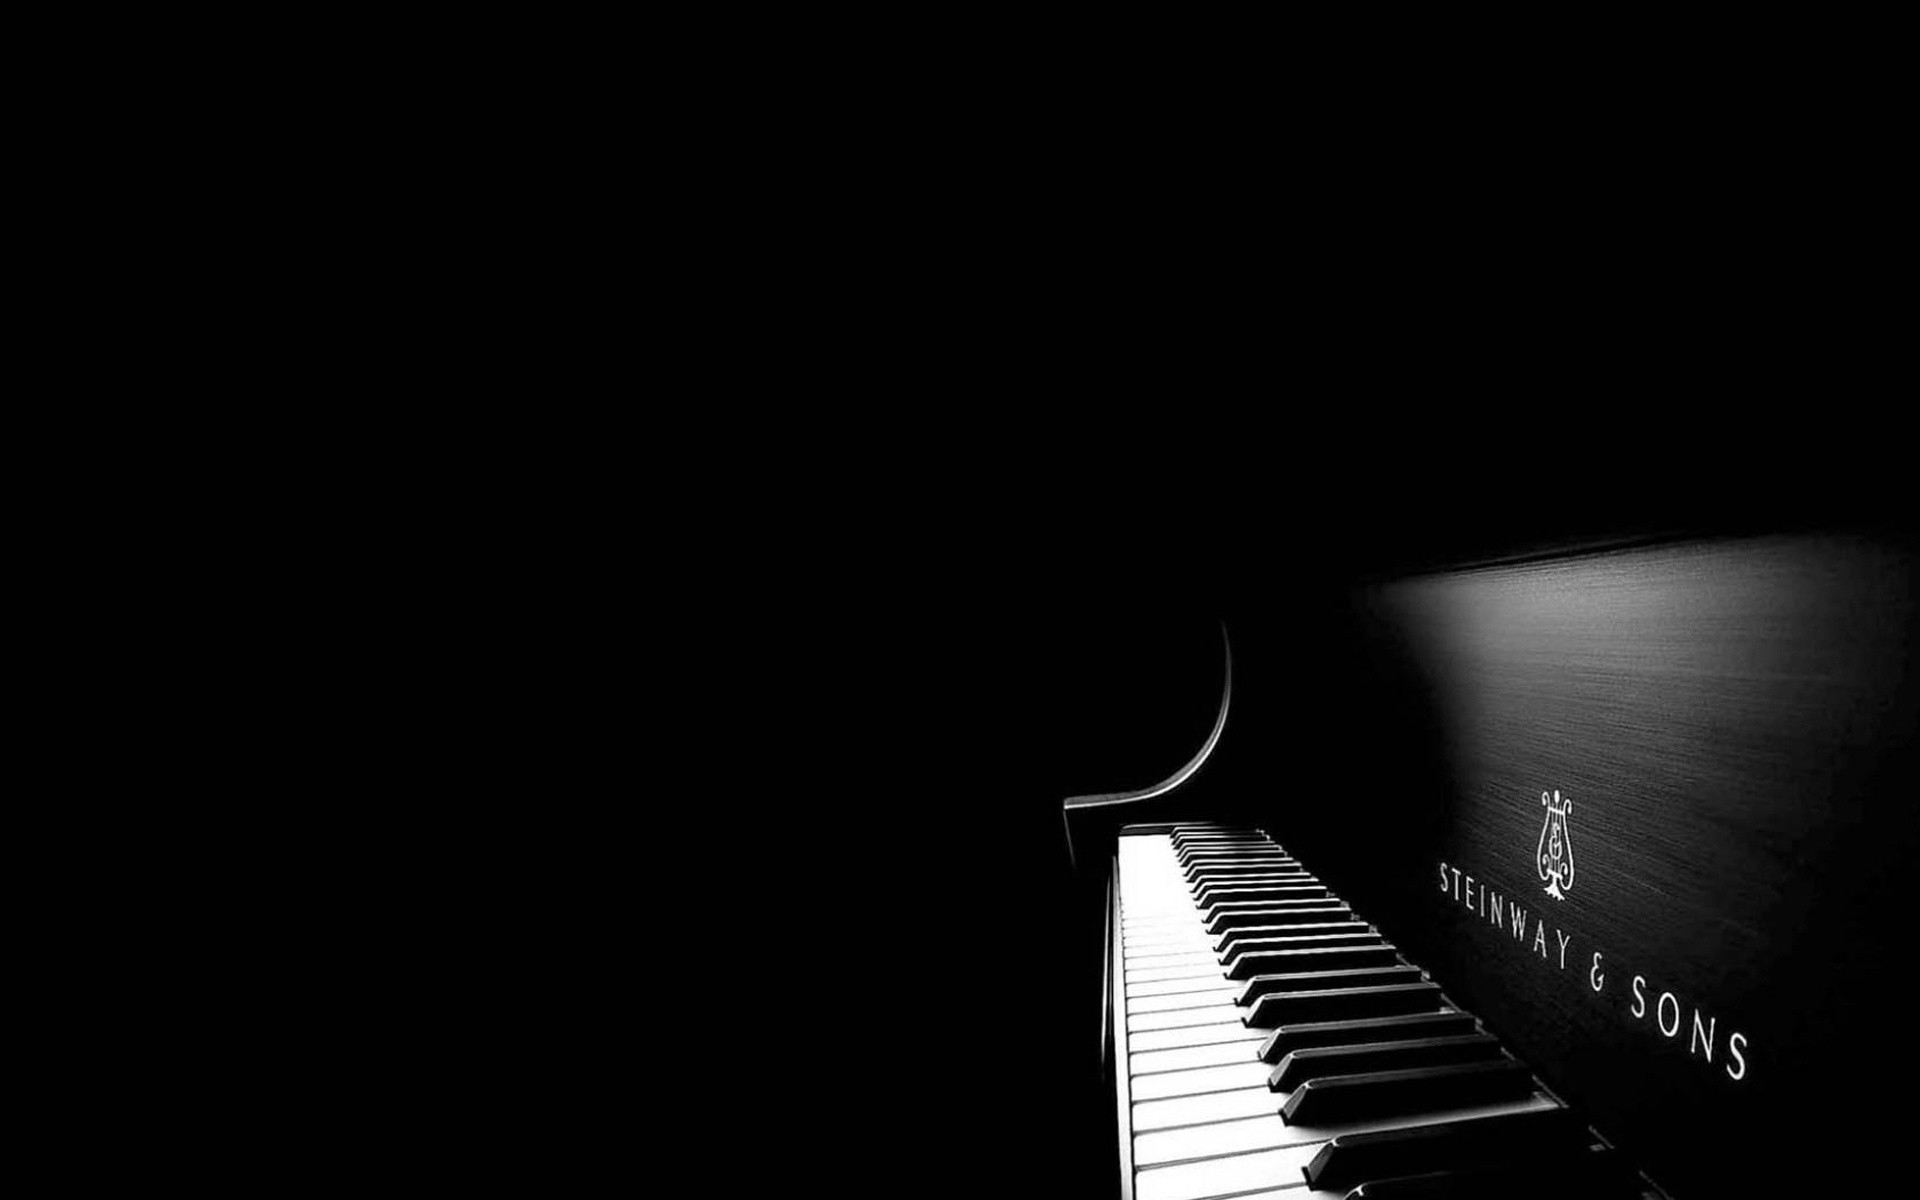 Steinway Sons Piano wallpapers Steinway Sons Piano stock photos 1920x1200